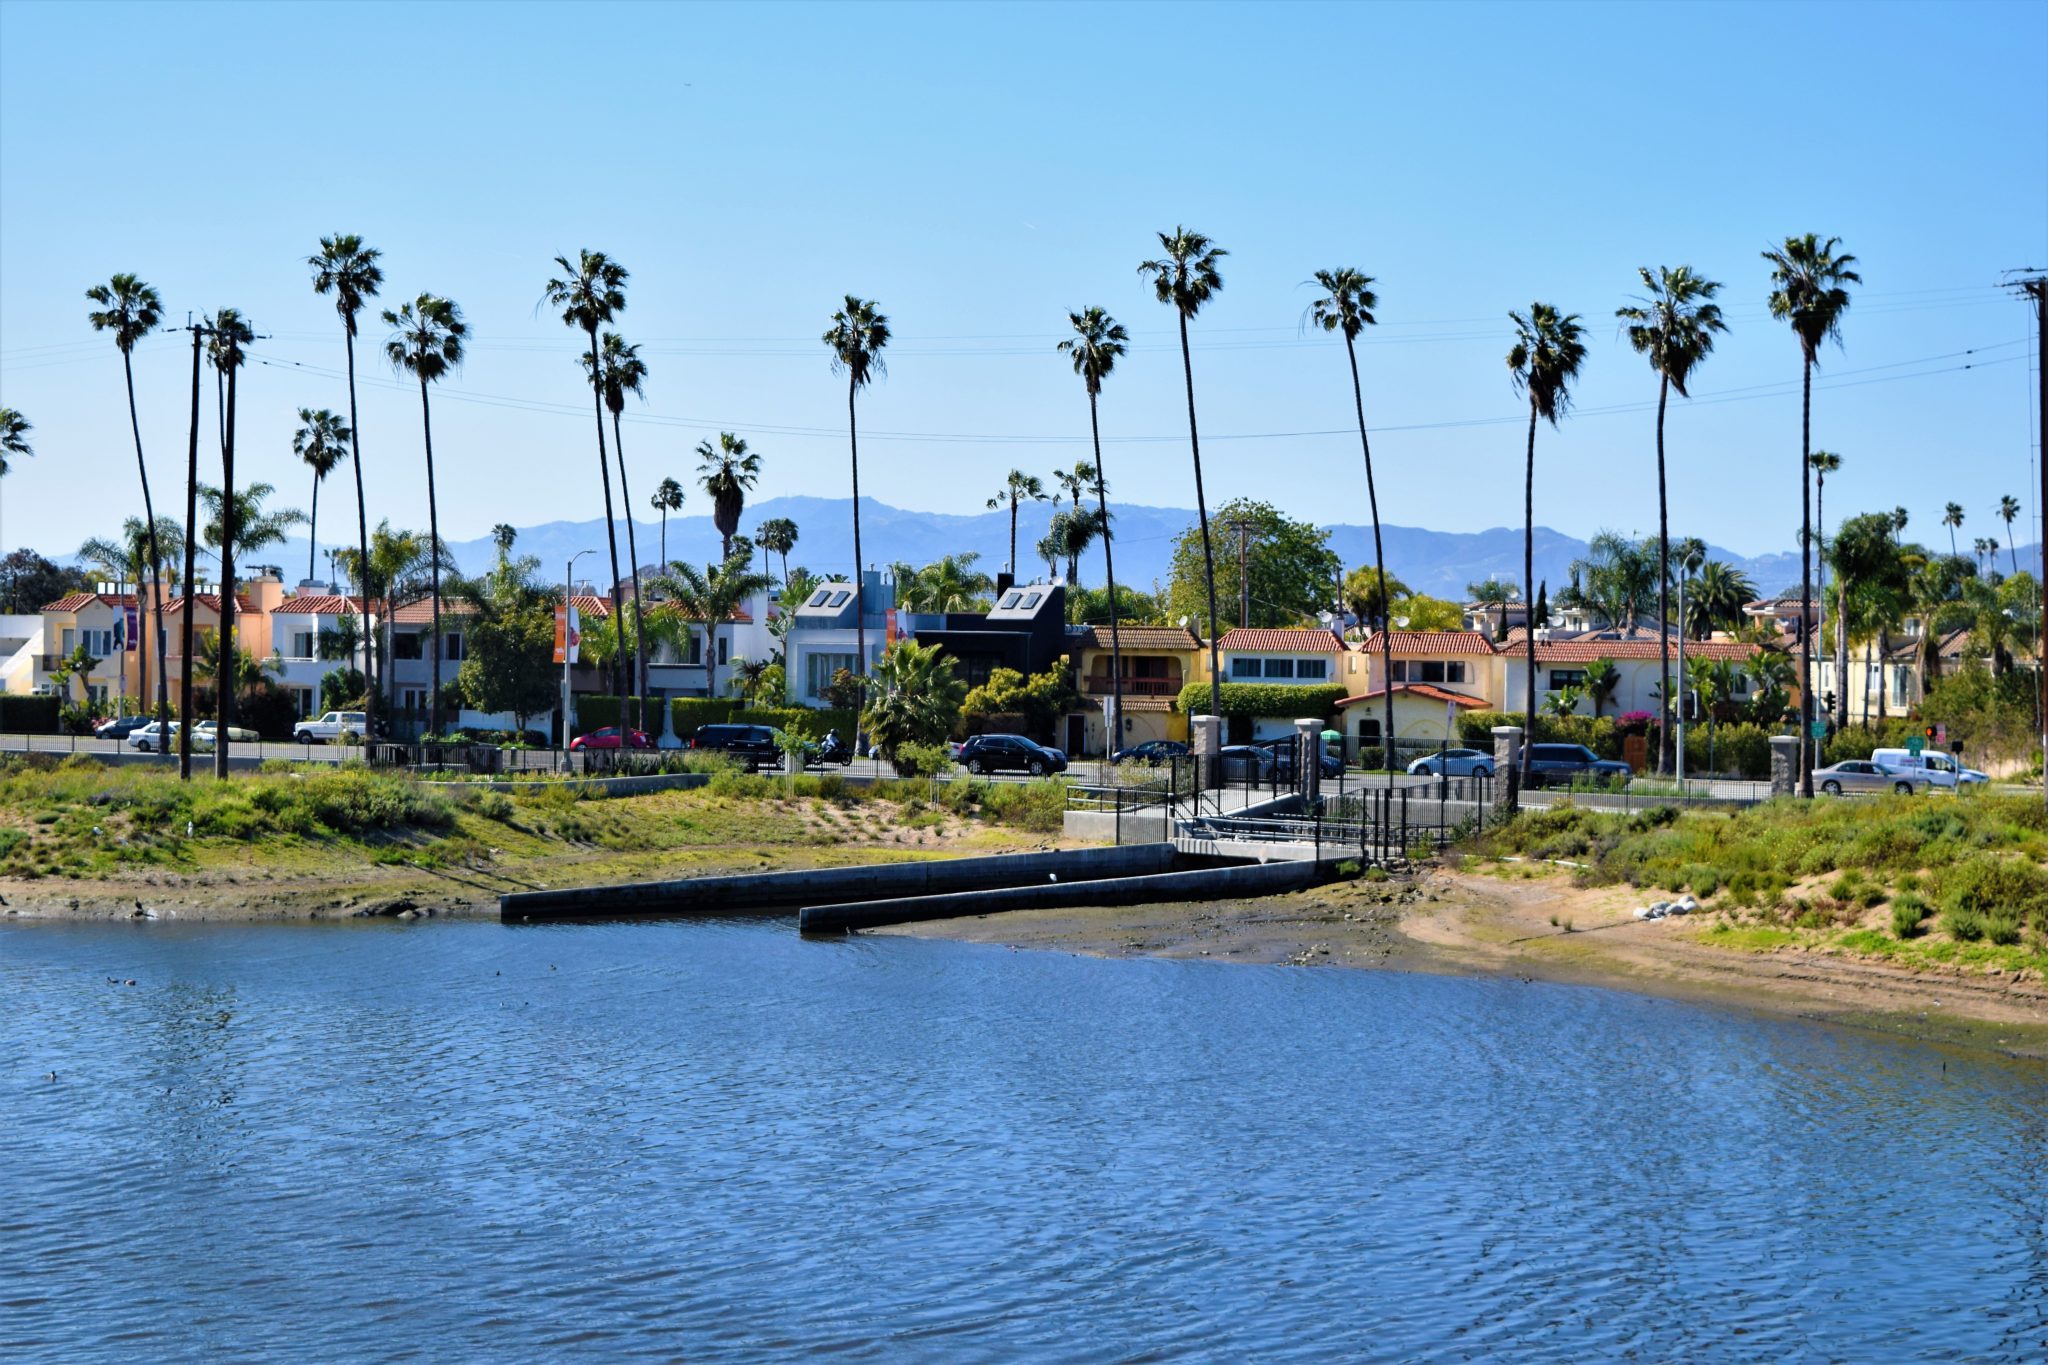 Fishermens village, hop on hop off bus los angeles